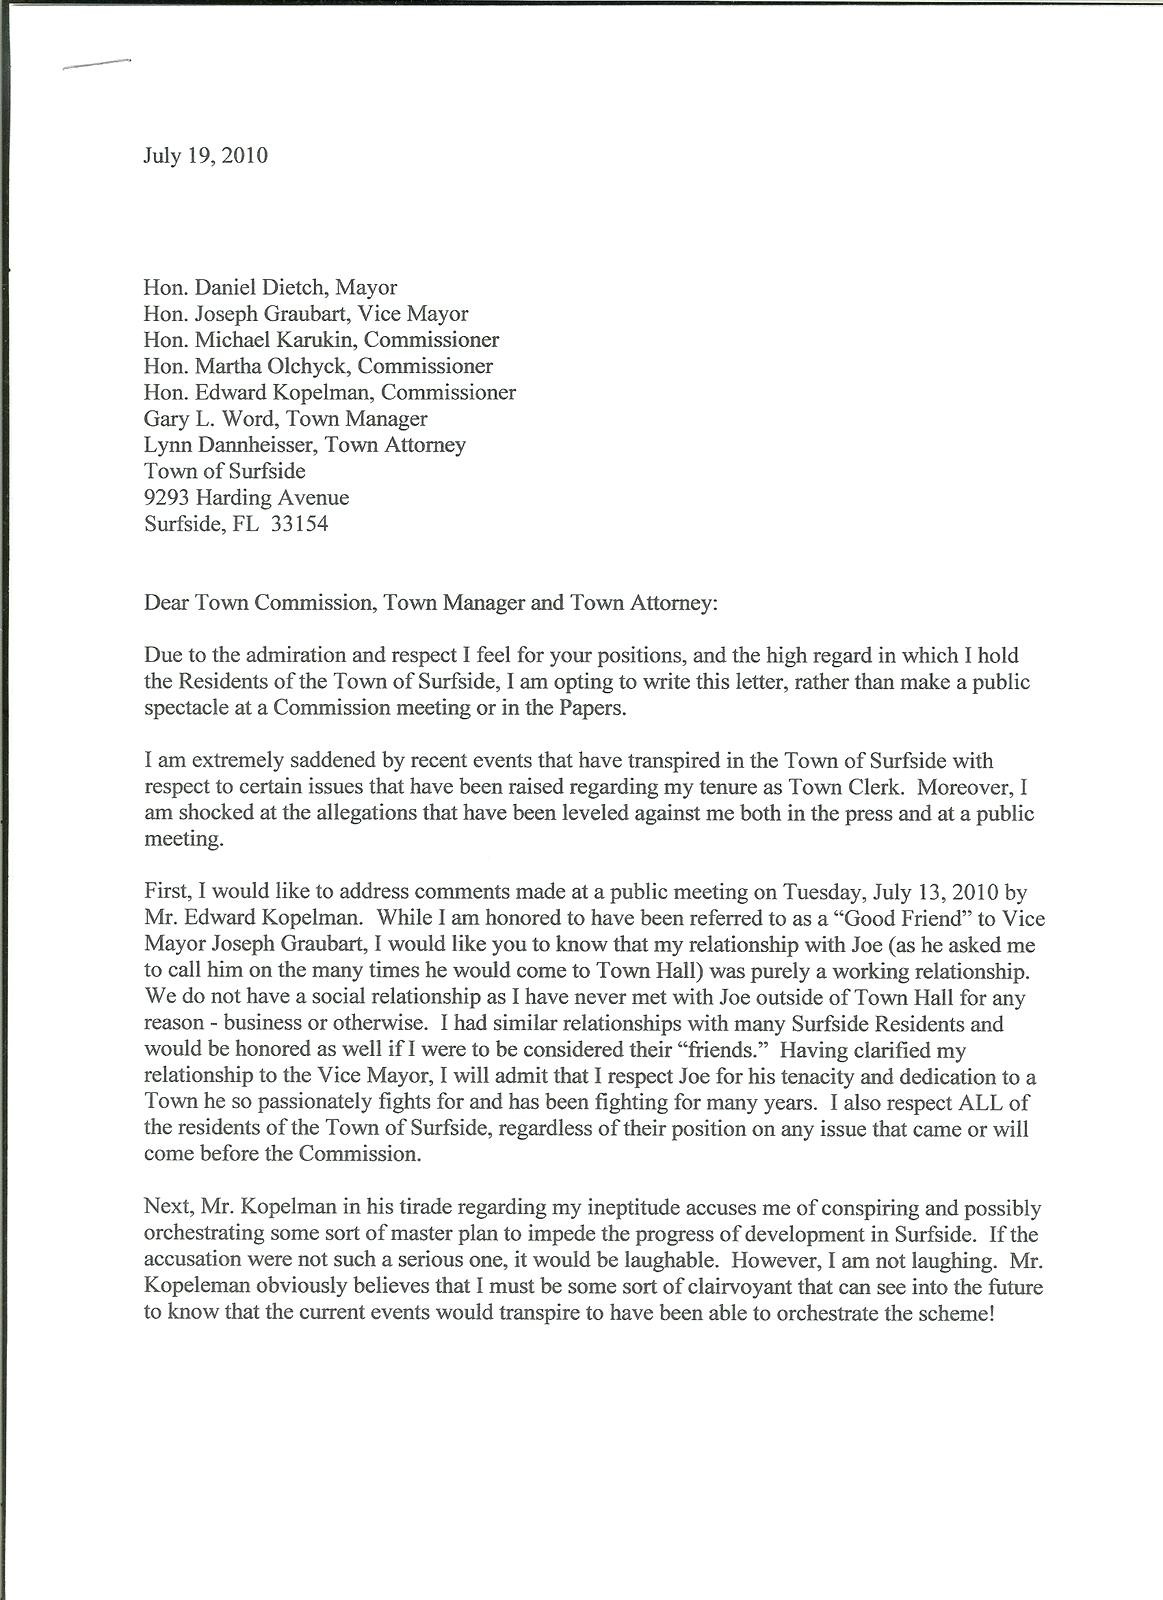 Slander Letter Template Uk - Cease and Desist Letter Harassment Template Defamation who Controls